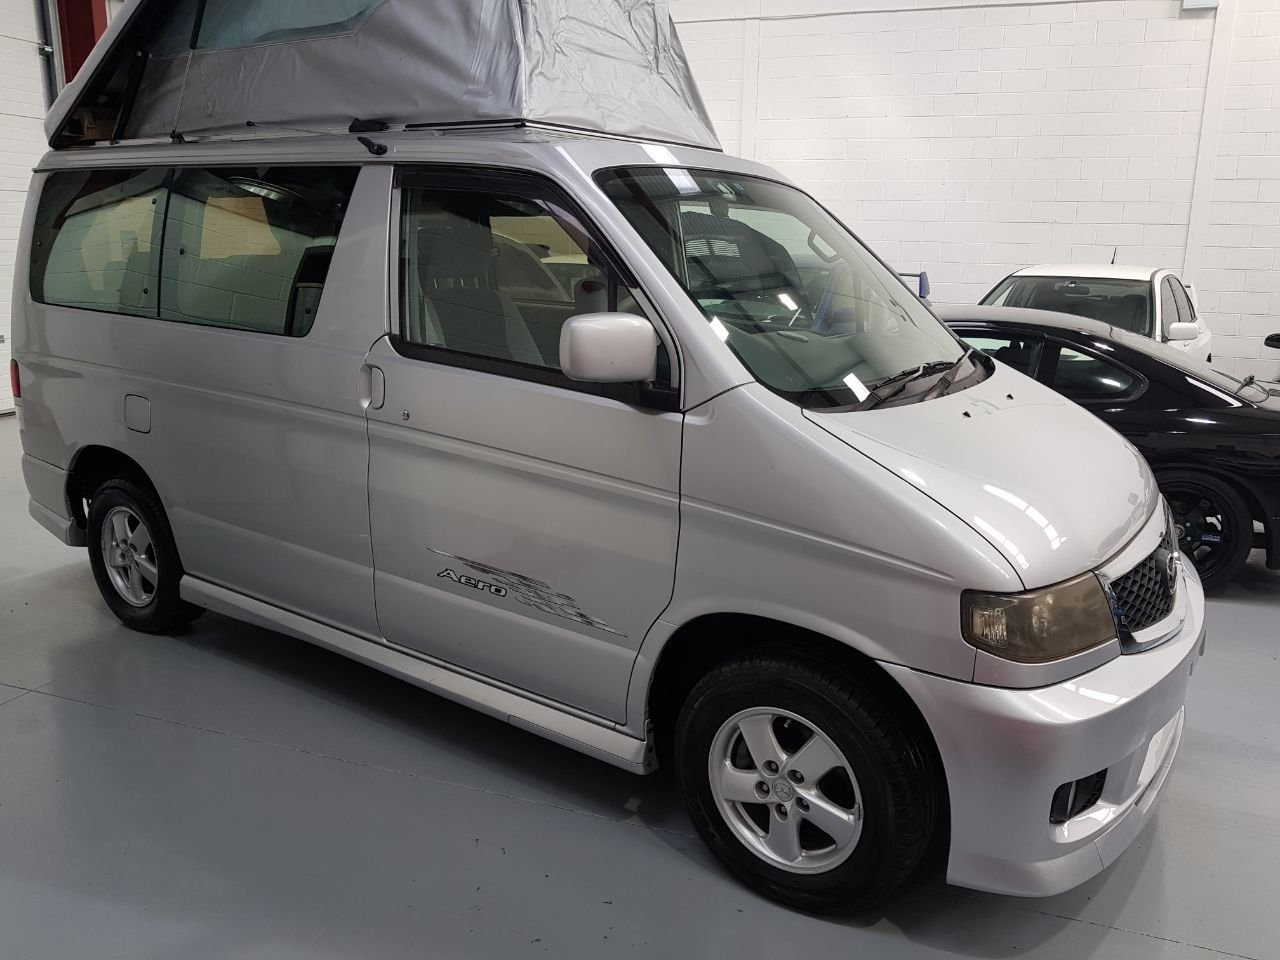 1998 Mazda Bongo 2.0 Lift up roof For Sale | Car And Classic